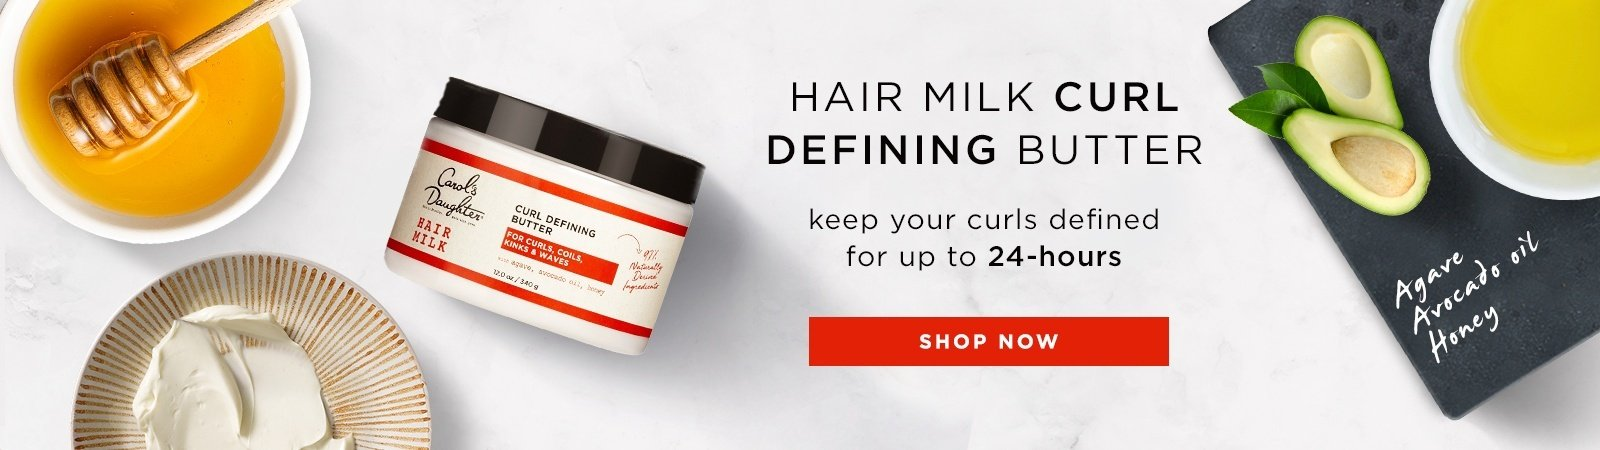 Hair Milk Curl Defining Butter